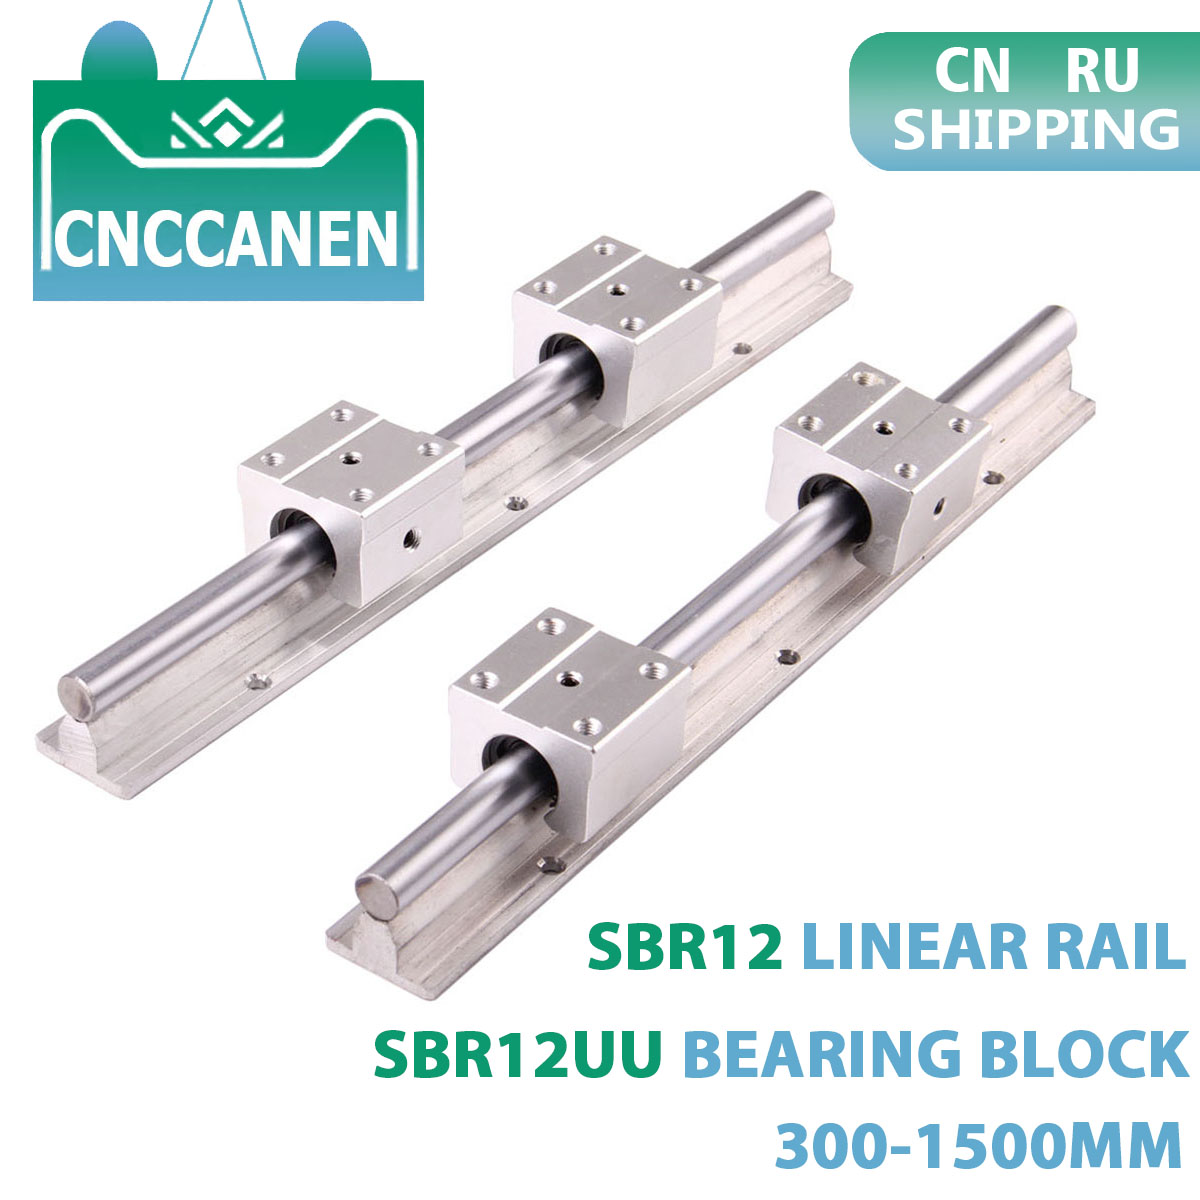 2PCS SBR12 12mm Linear Guide Rail Length 300 400 500 600 1000mm 1200 1300 1500mm With 4PCS SBR12UU Linear Bearing Block CNC Part